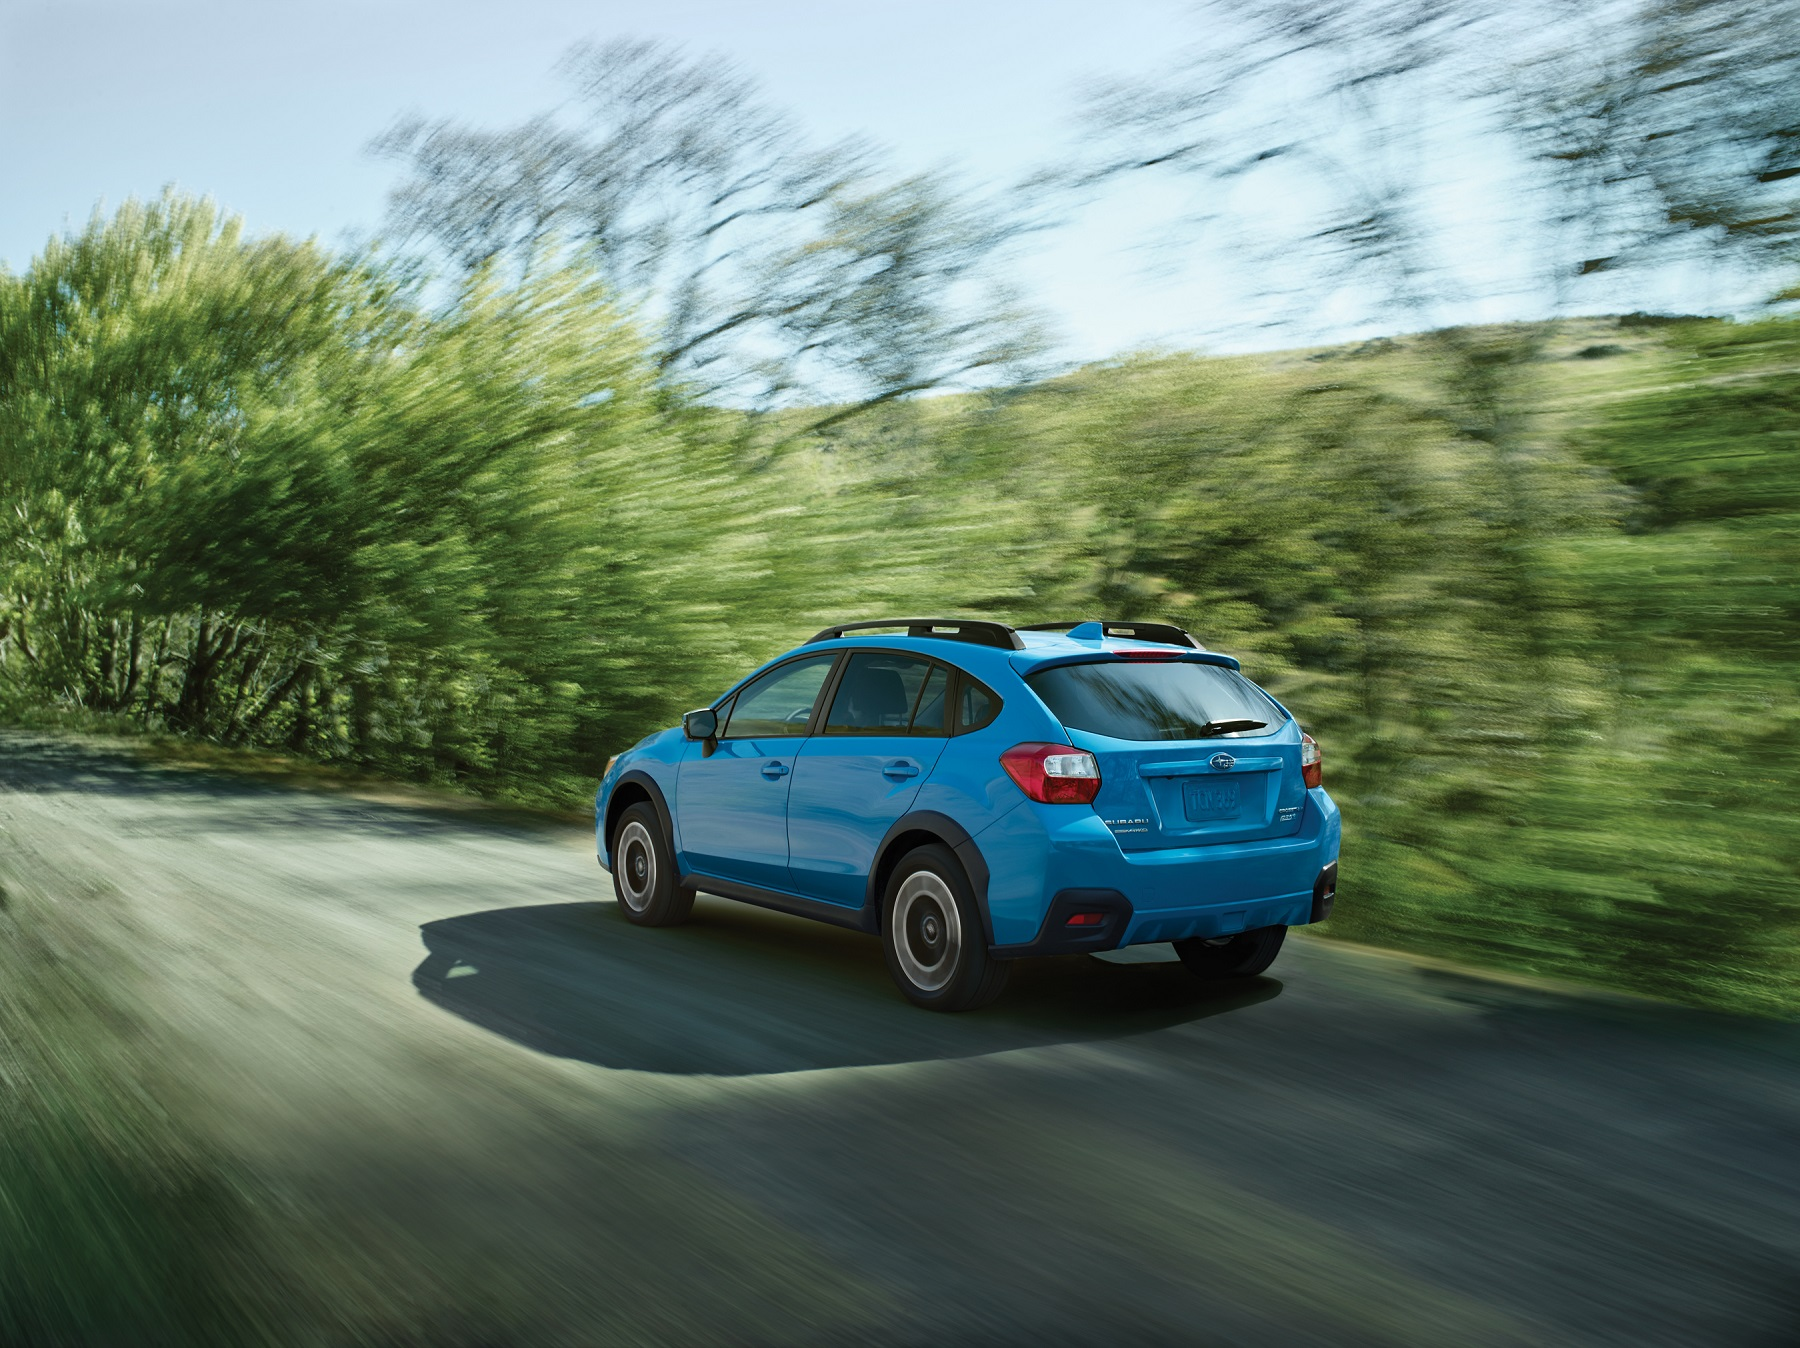 Manufacturer photo: Crosstrek models are powered by a 148-horsepower 2.0-liter Boxer engine, paired with a 5-speed manual transmission or the available Lineartronic continuously variable transmission